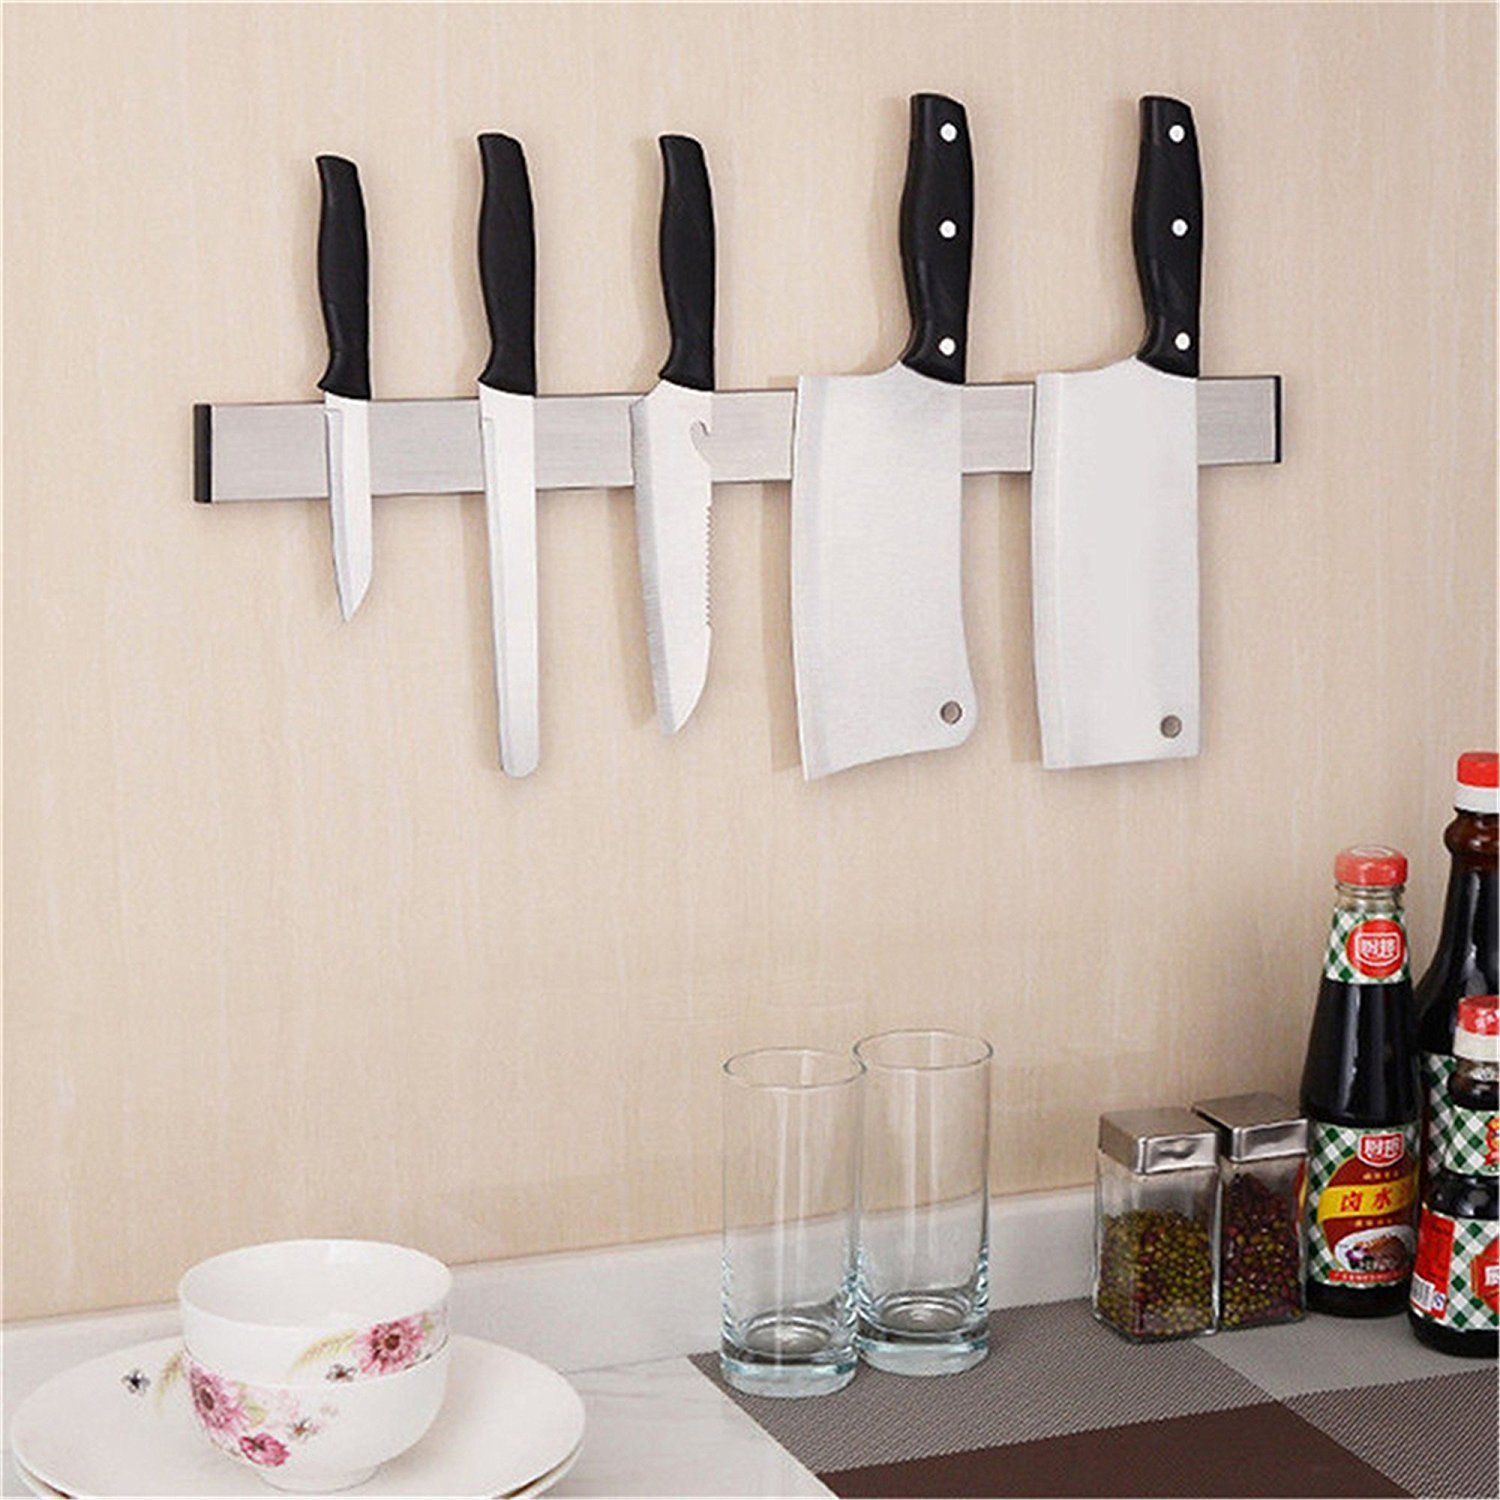 Sonicee Knife Holder,Magnetic Stainless Steel Knife Storage Wall Rack Holder